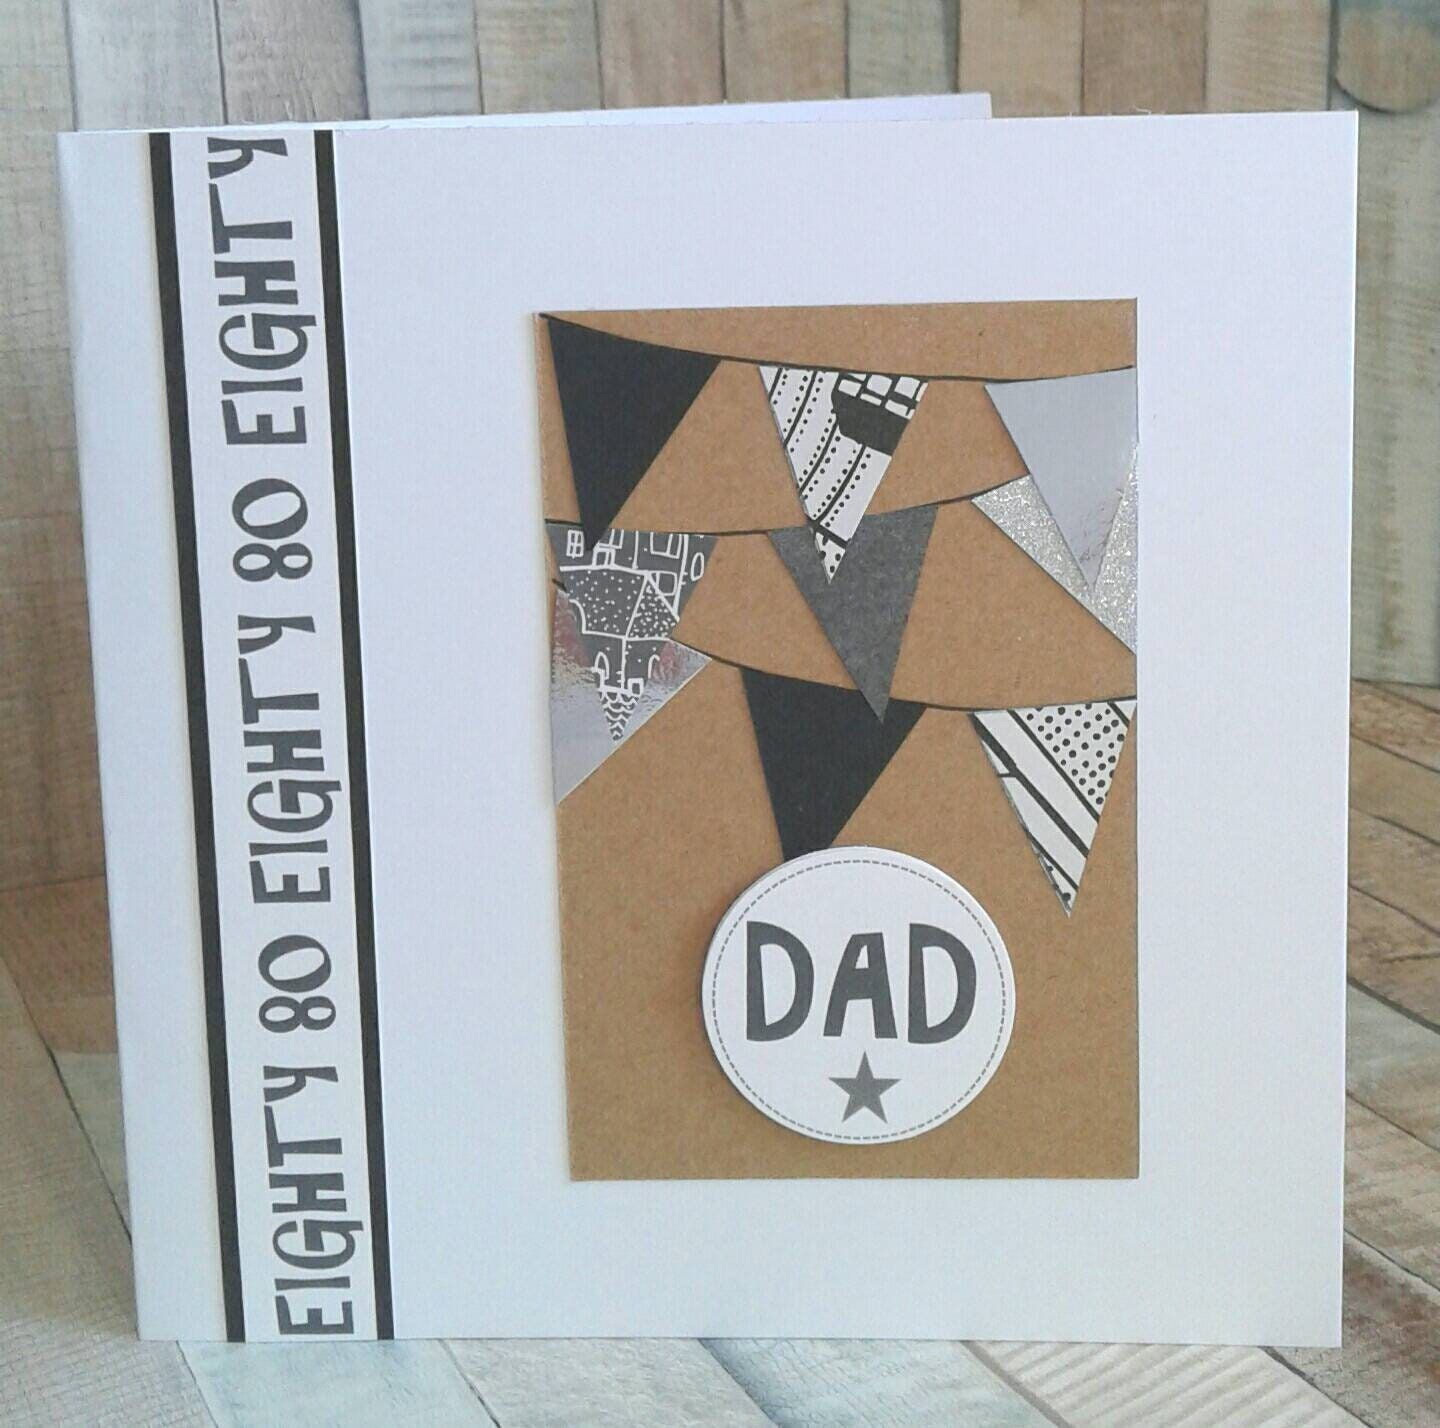 DAD 80th BIRTHDAY CARD Card For Birthday Cards Him